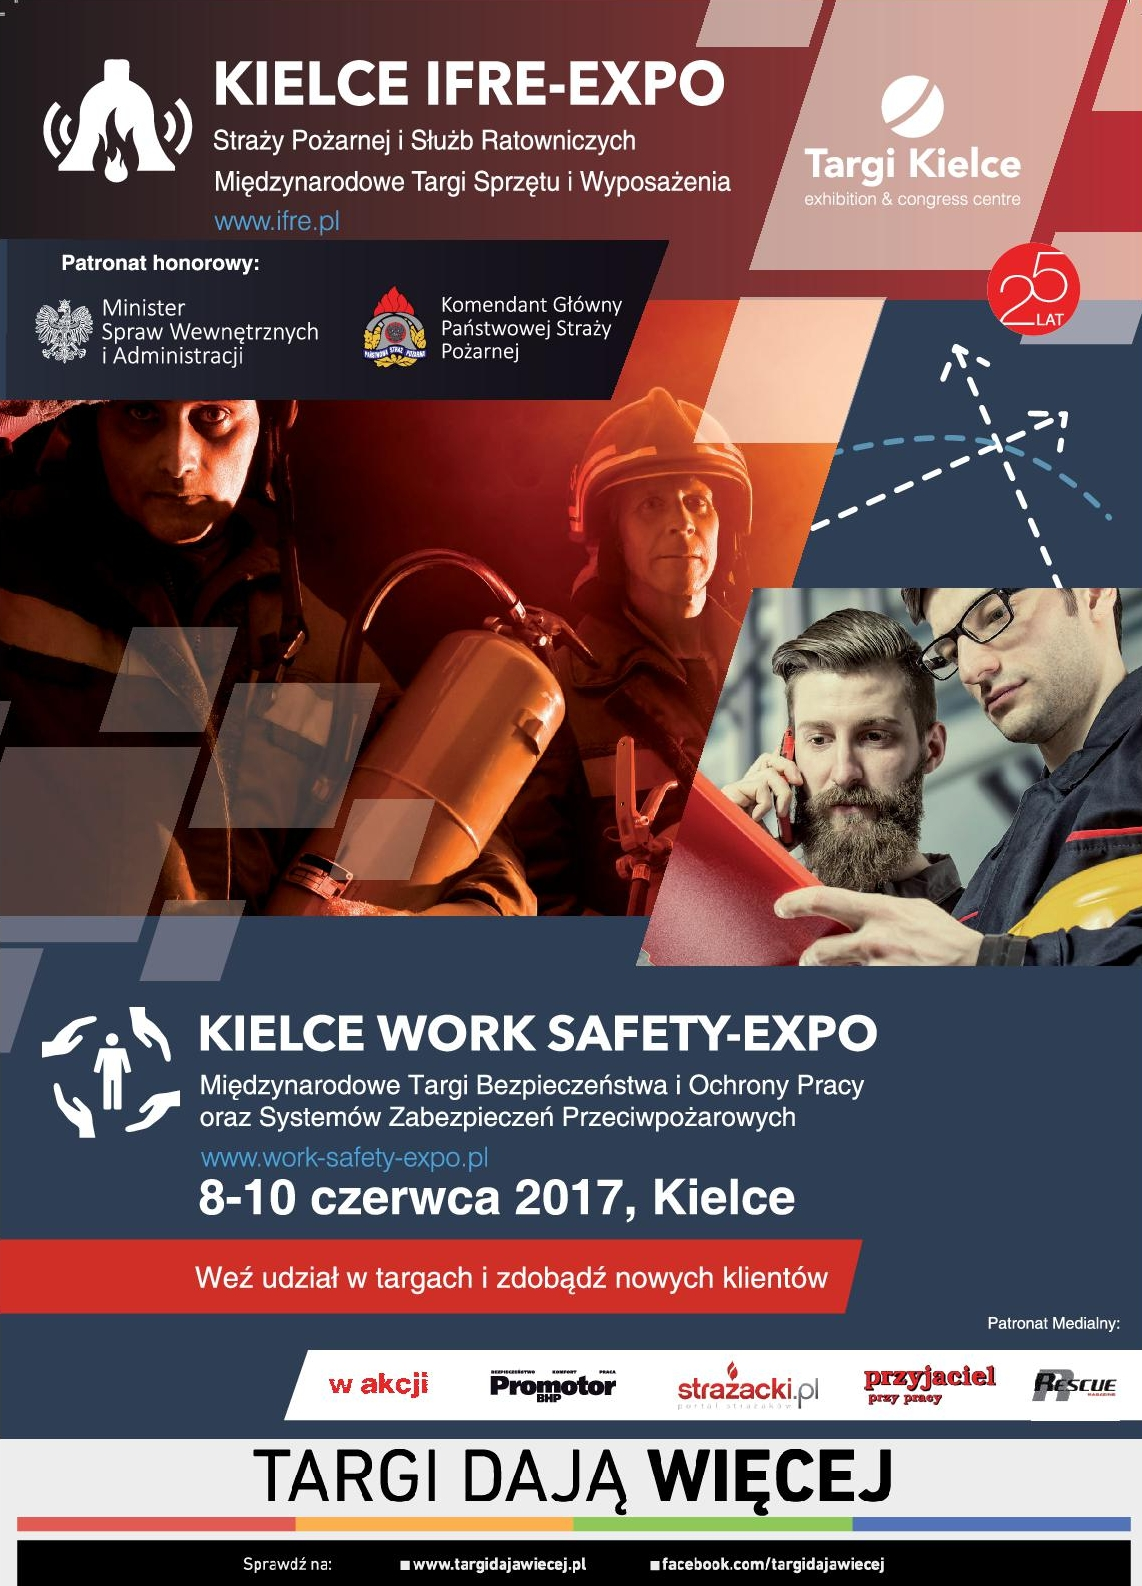 KIELCE WORK SAFETY-EXPO 2017